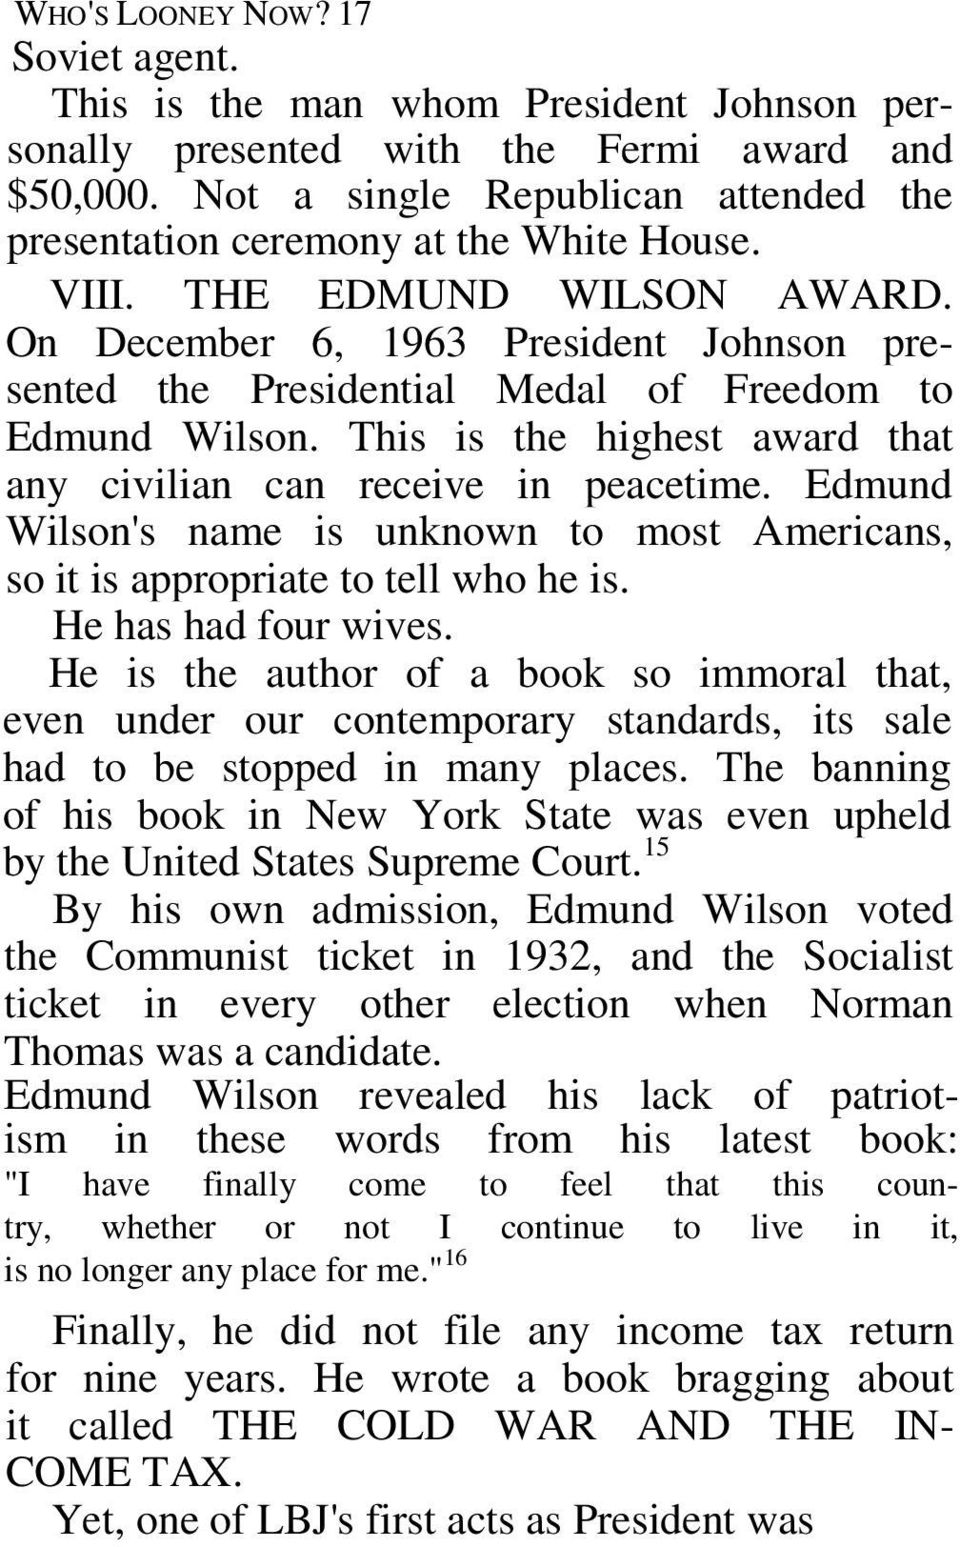 On December 6, 1963 President Johnson presented the Presidential Medal of Freedom to Edmund Wilson. This is the highest award that any civilian can receive in peacetime.